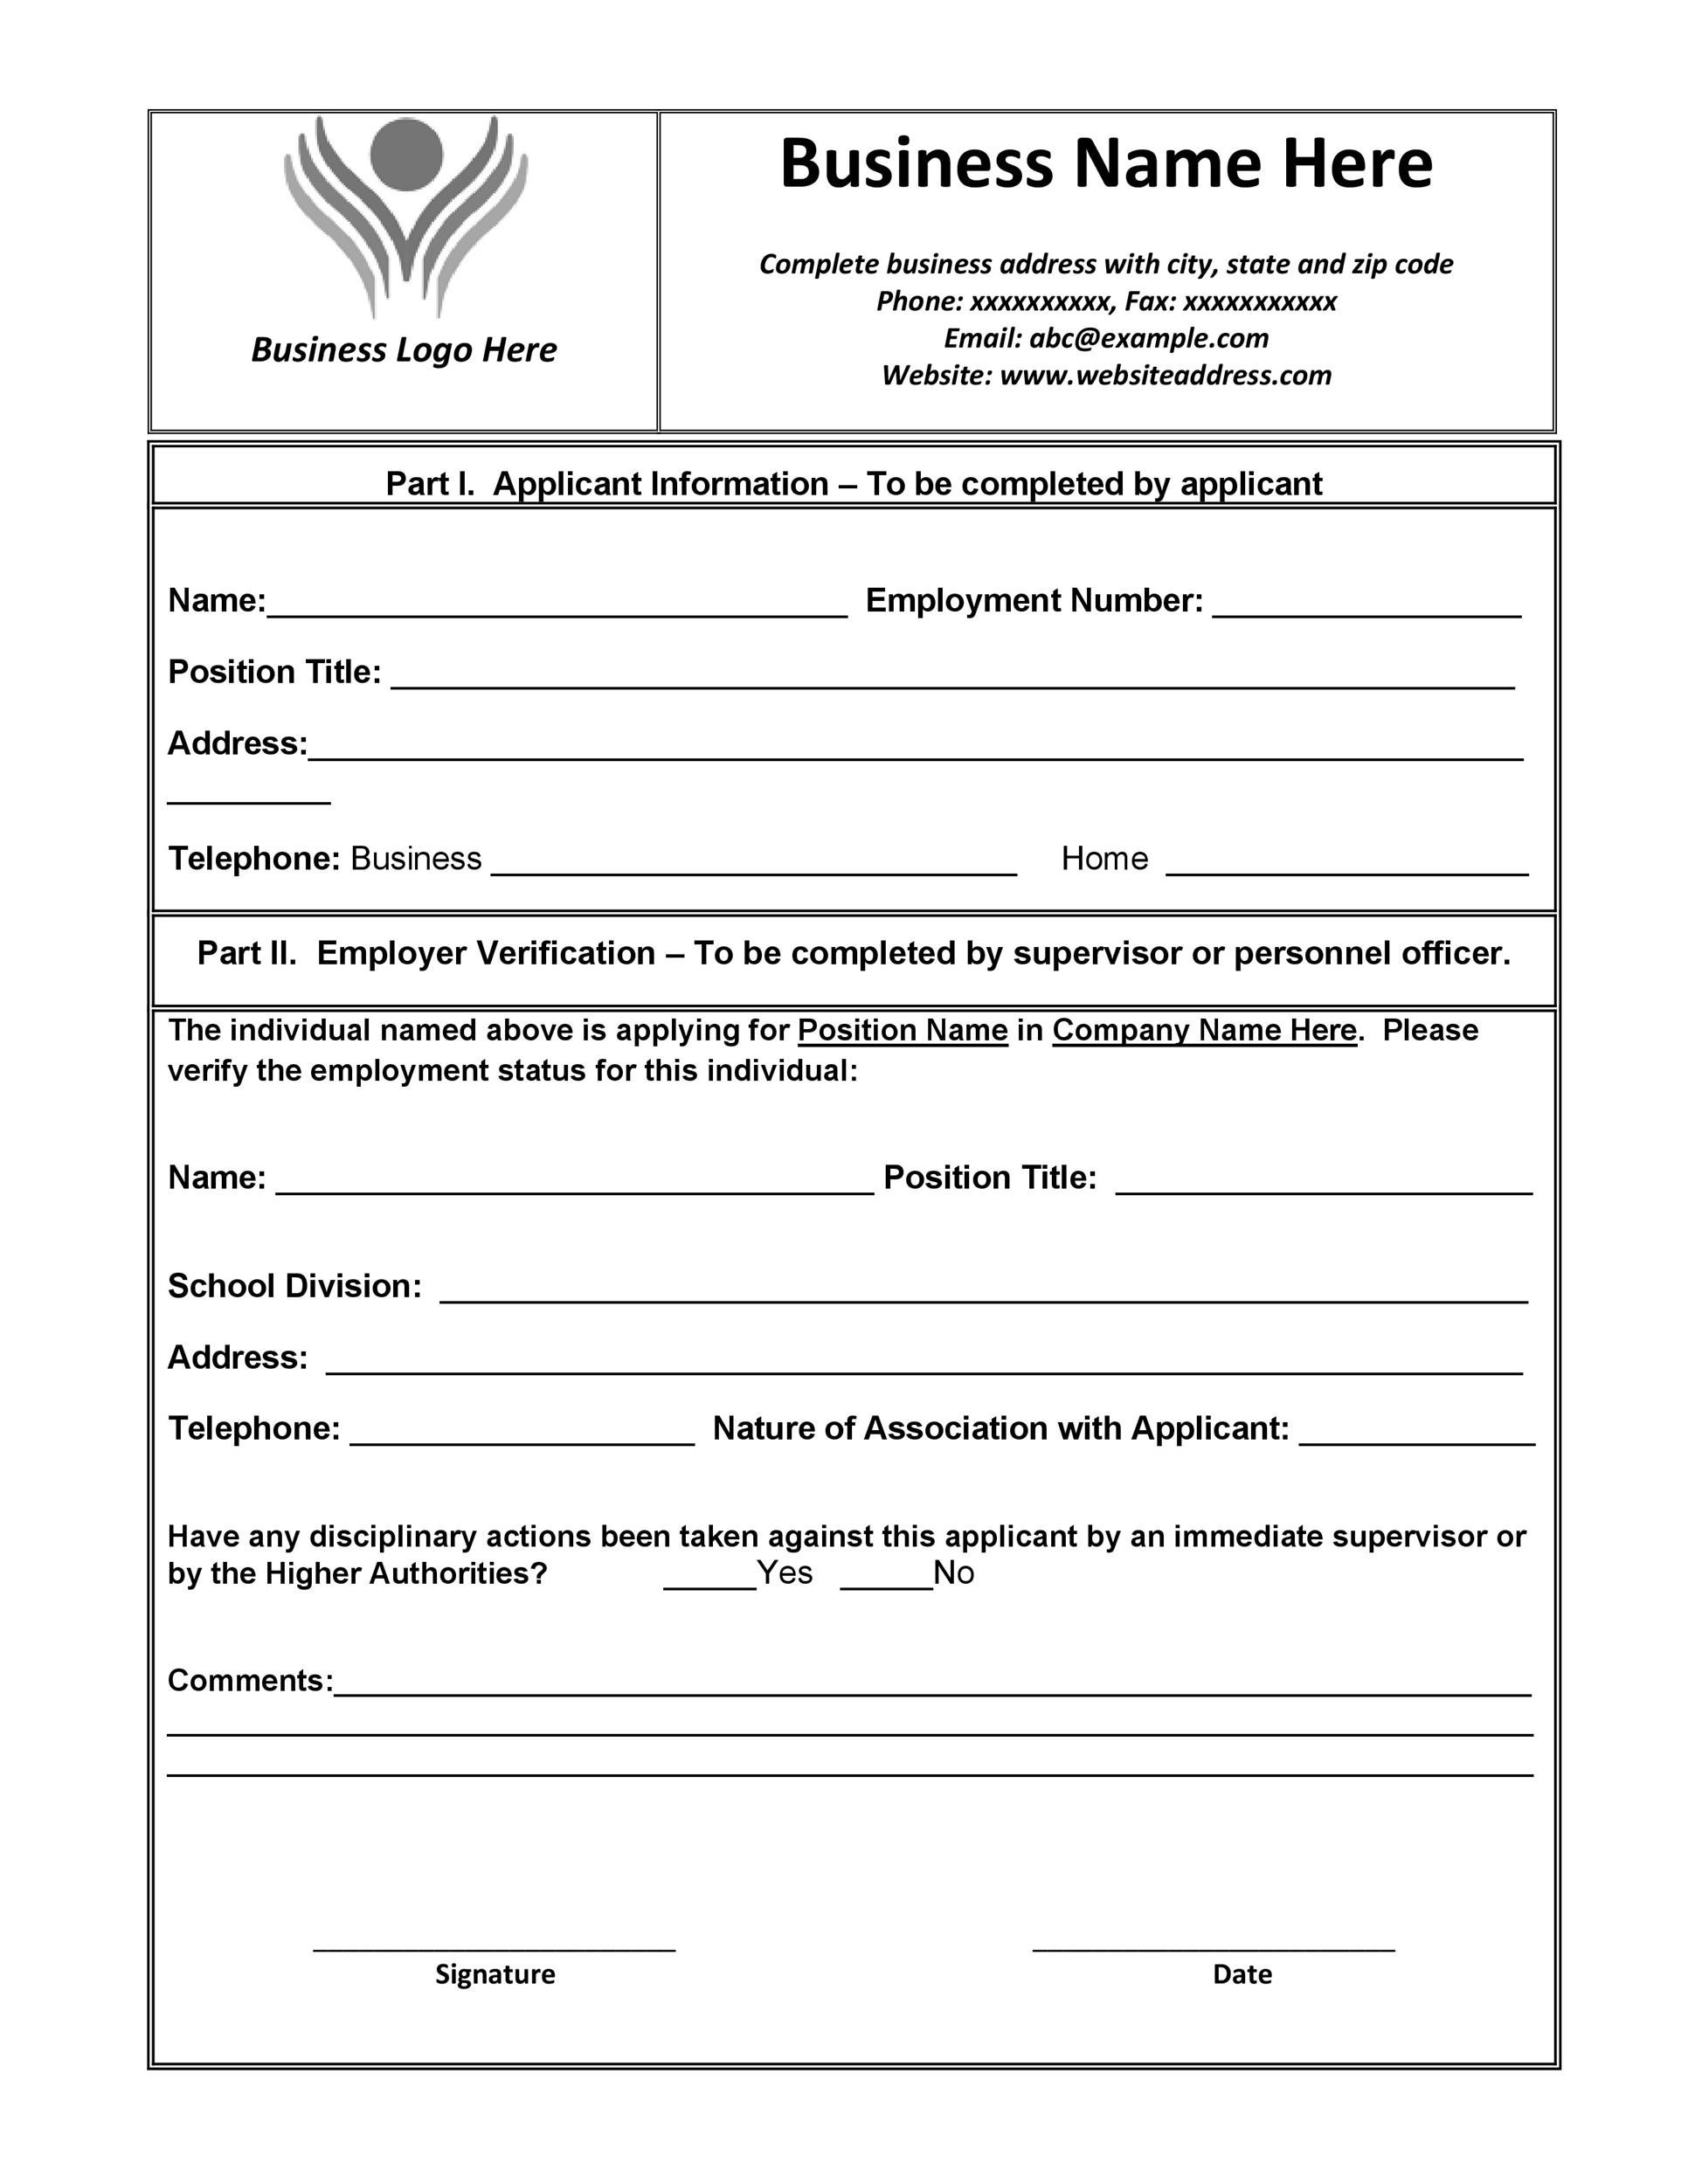 008 Fearsome Background Check Form Template Free Example  AuthorizationFull